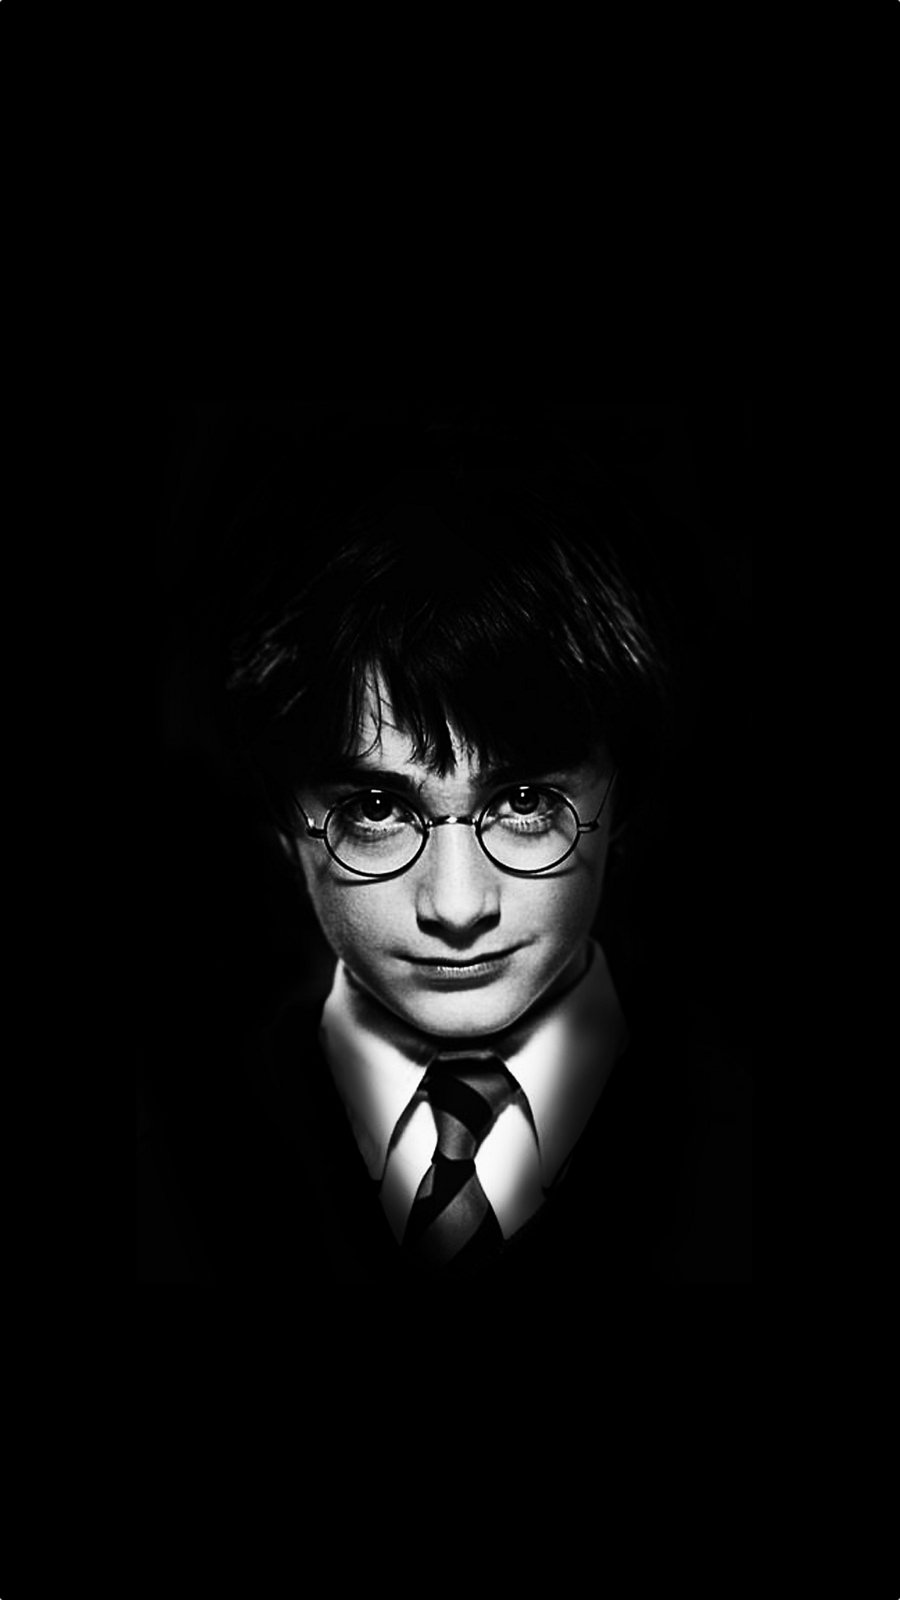 iphone 6 Plus Harry Potter Wallpaper Flickr   Photo Sharing 900x1600